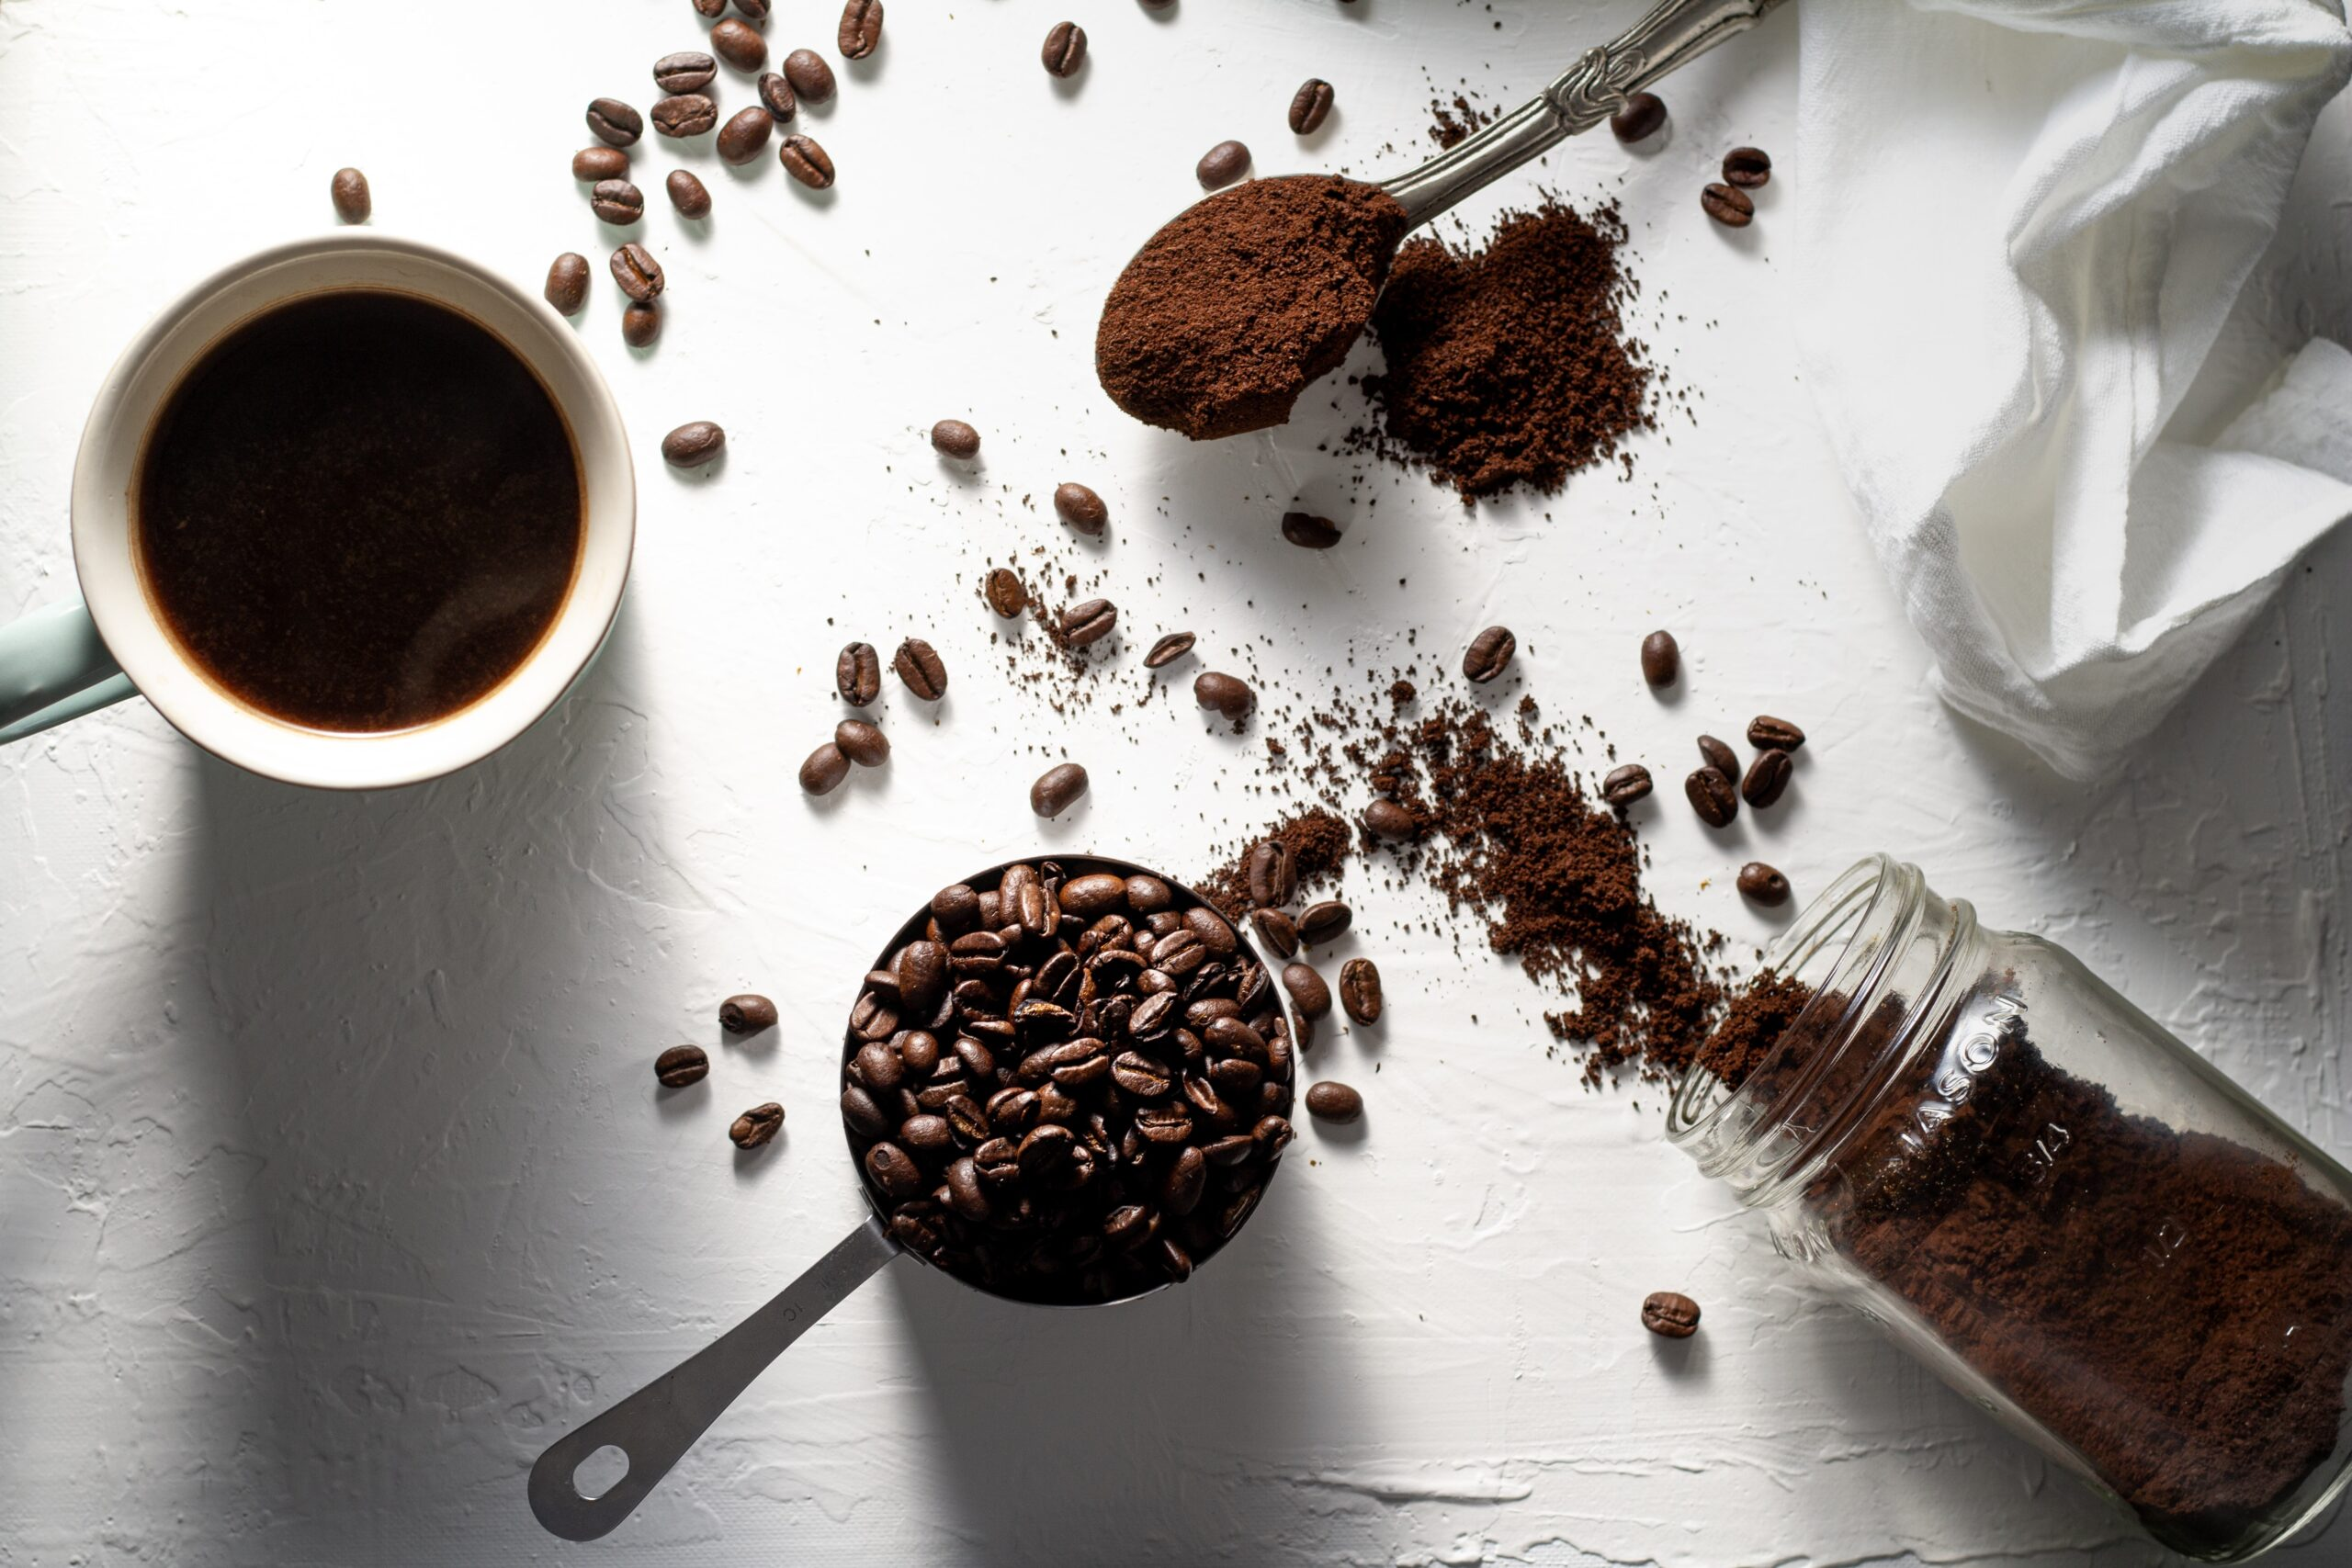 coffee beans scattered across a table